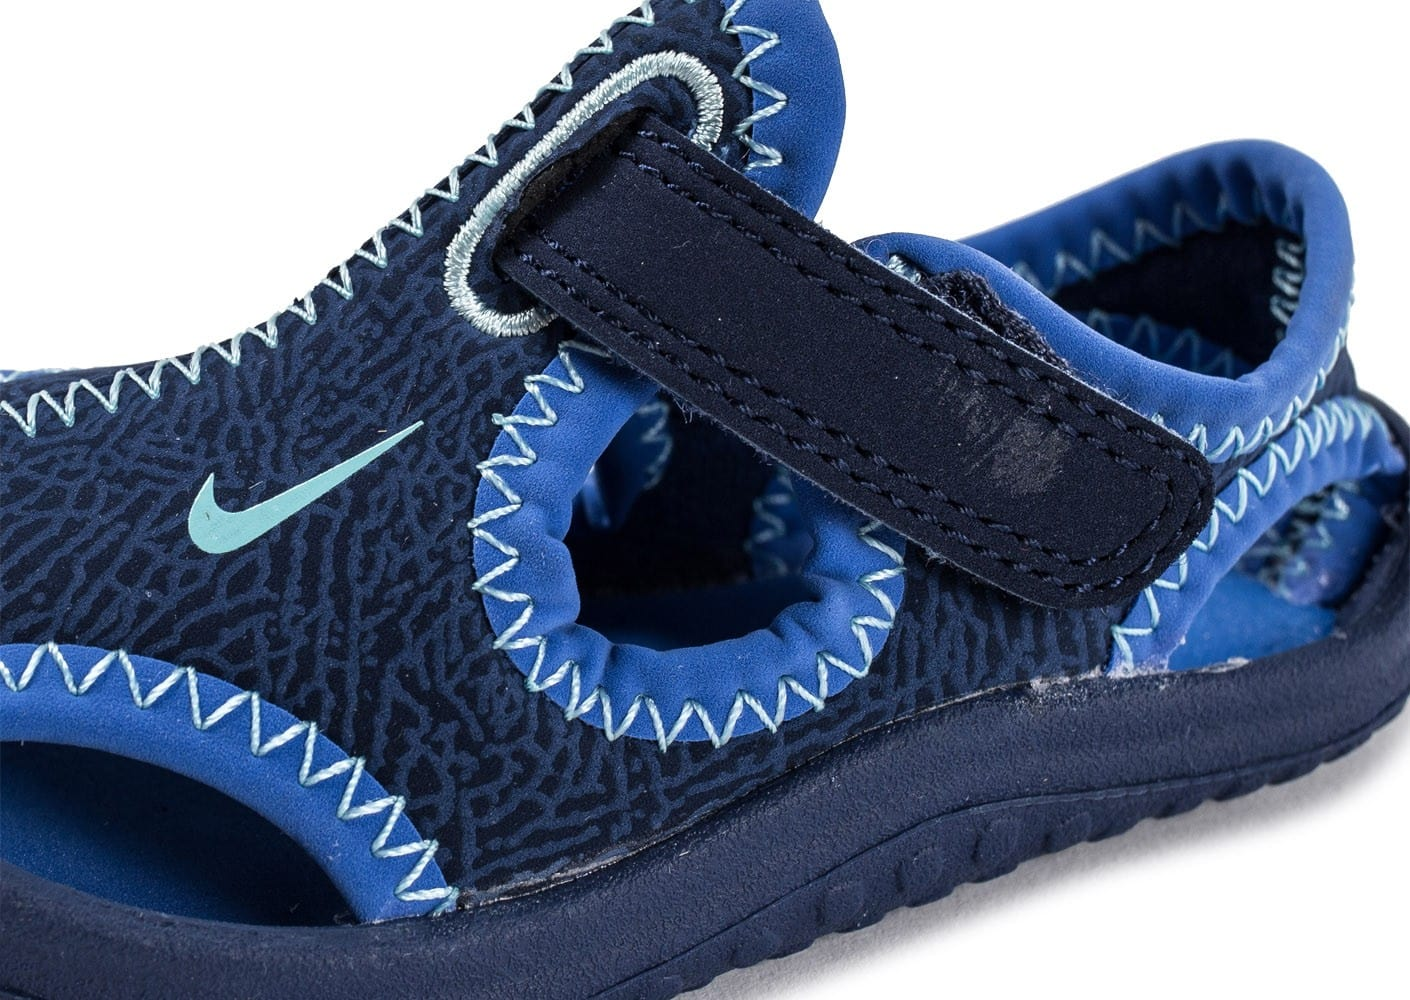 732ee4f441d ... chaussures nike sunray protect bebe bleu vue details